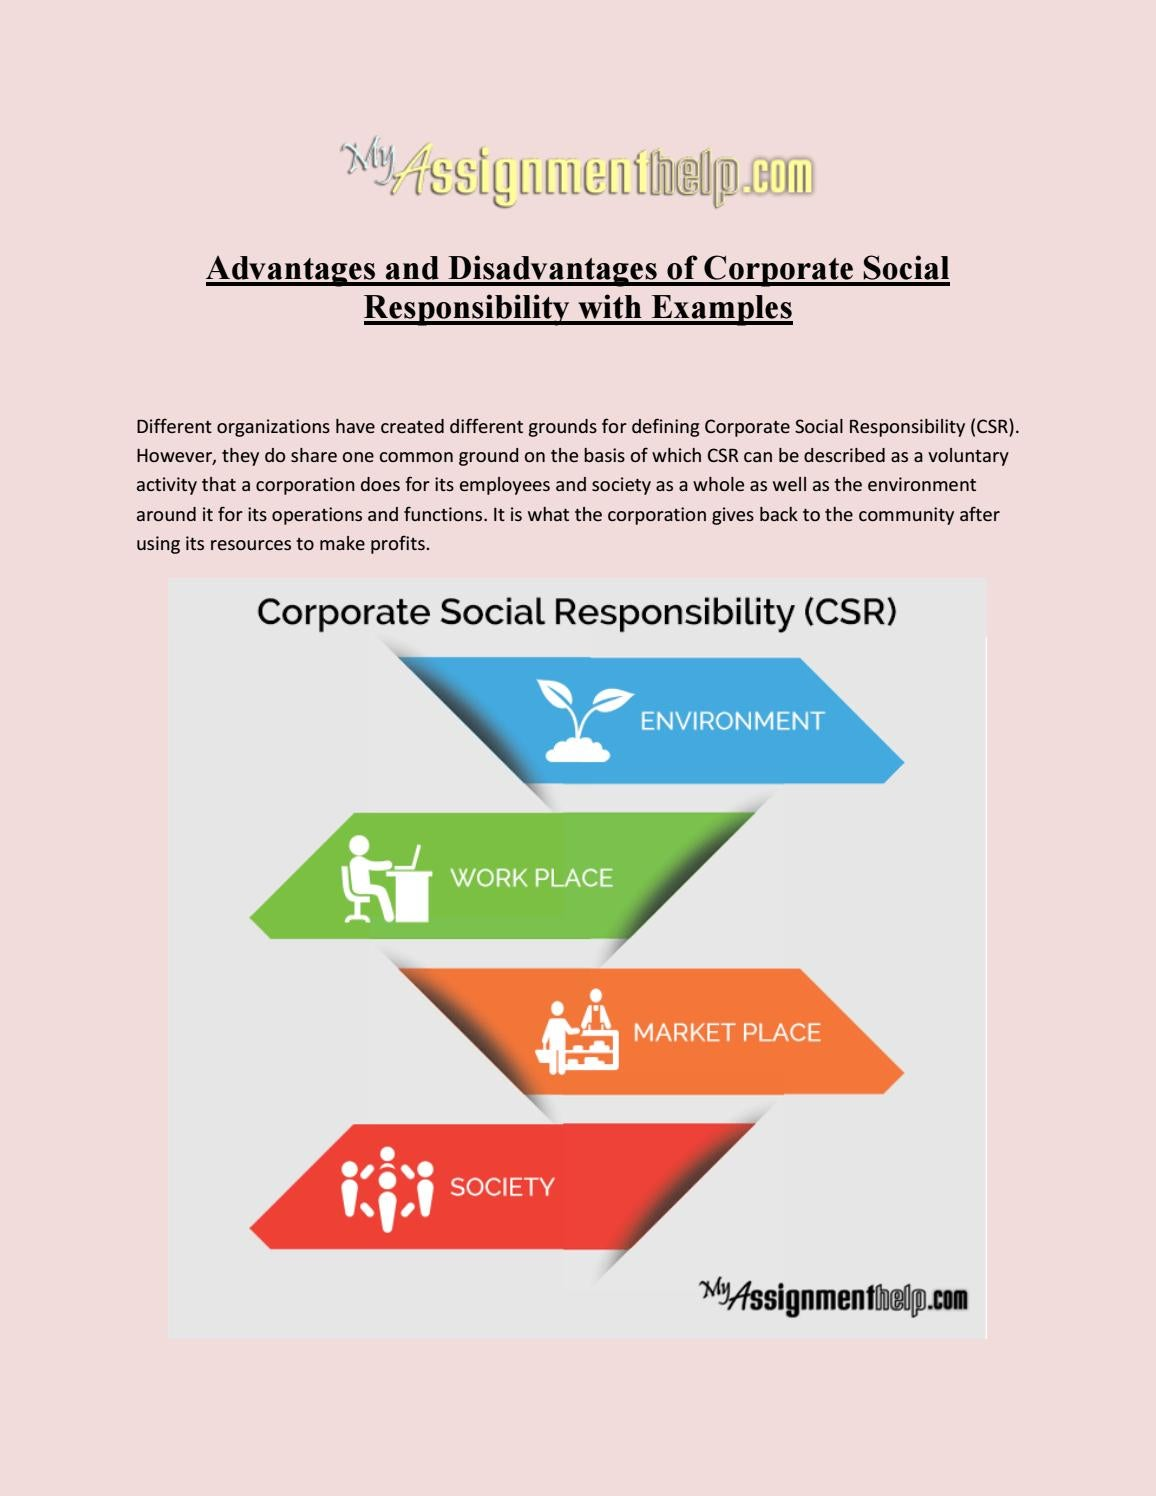 corporate social responsibility advantages and disadvantages Corporate social responsibility (csr) is a broad term used to describe a company's efforts to improve society in some way these efforts can range from donating money to nonprofits to implementing environmentally-friendly policies in the workplace csr is important for companies, nonprofits, and employees alike.